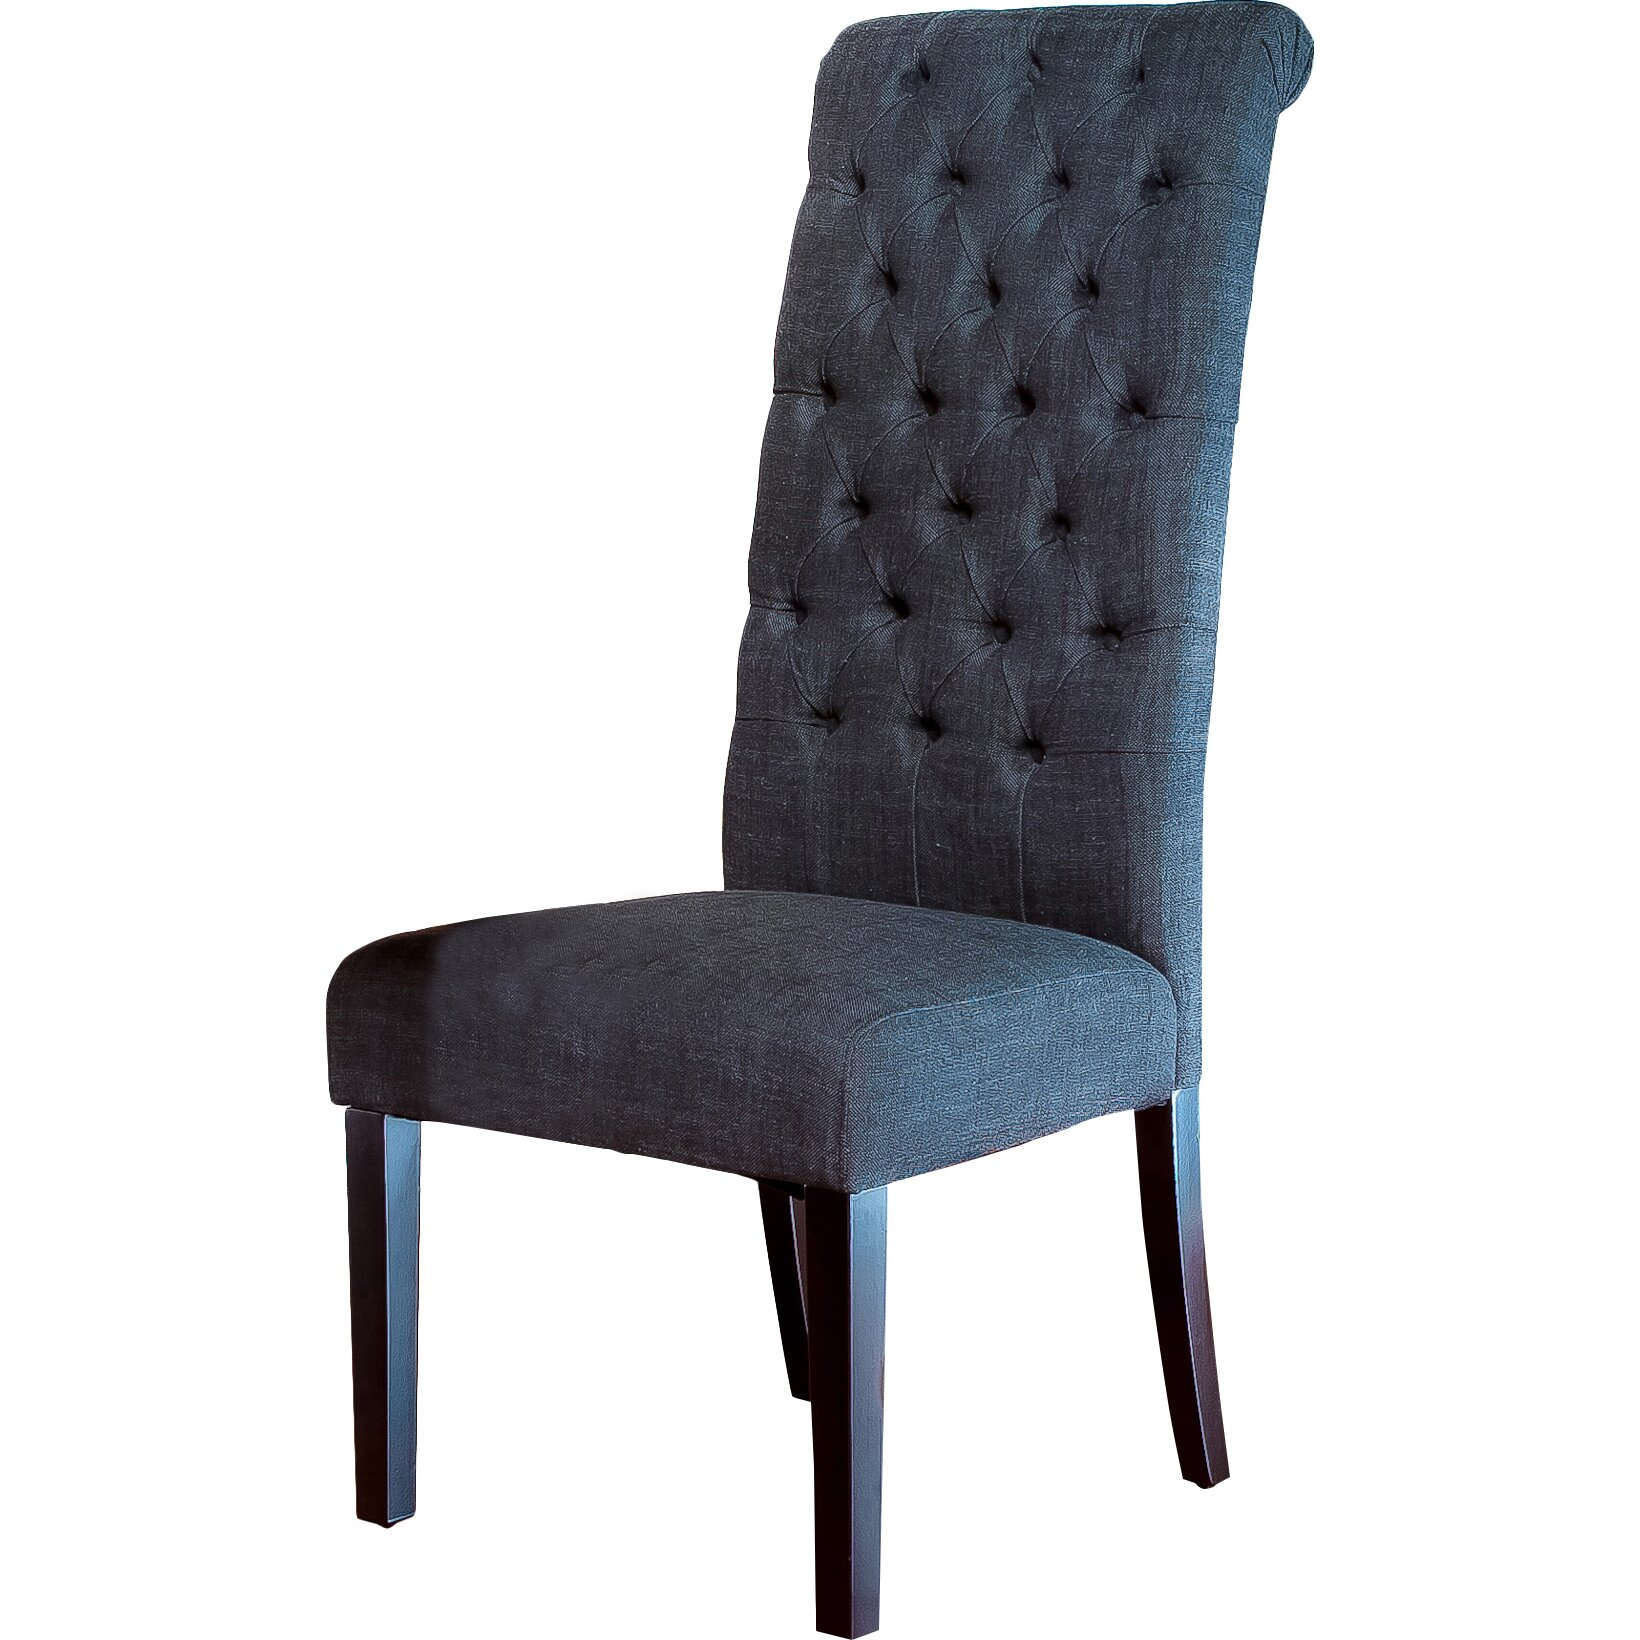 Charlton home estbury tall tufted upholstered dining chair for Upholstered dining chairs